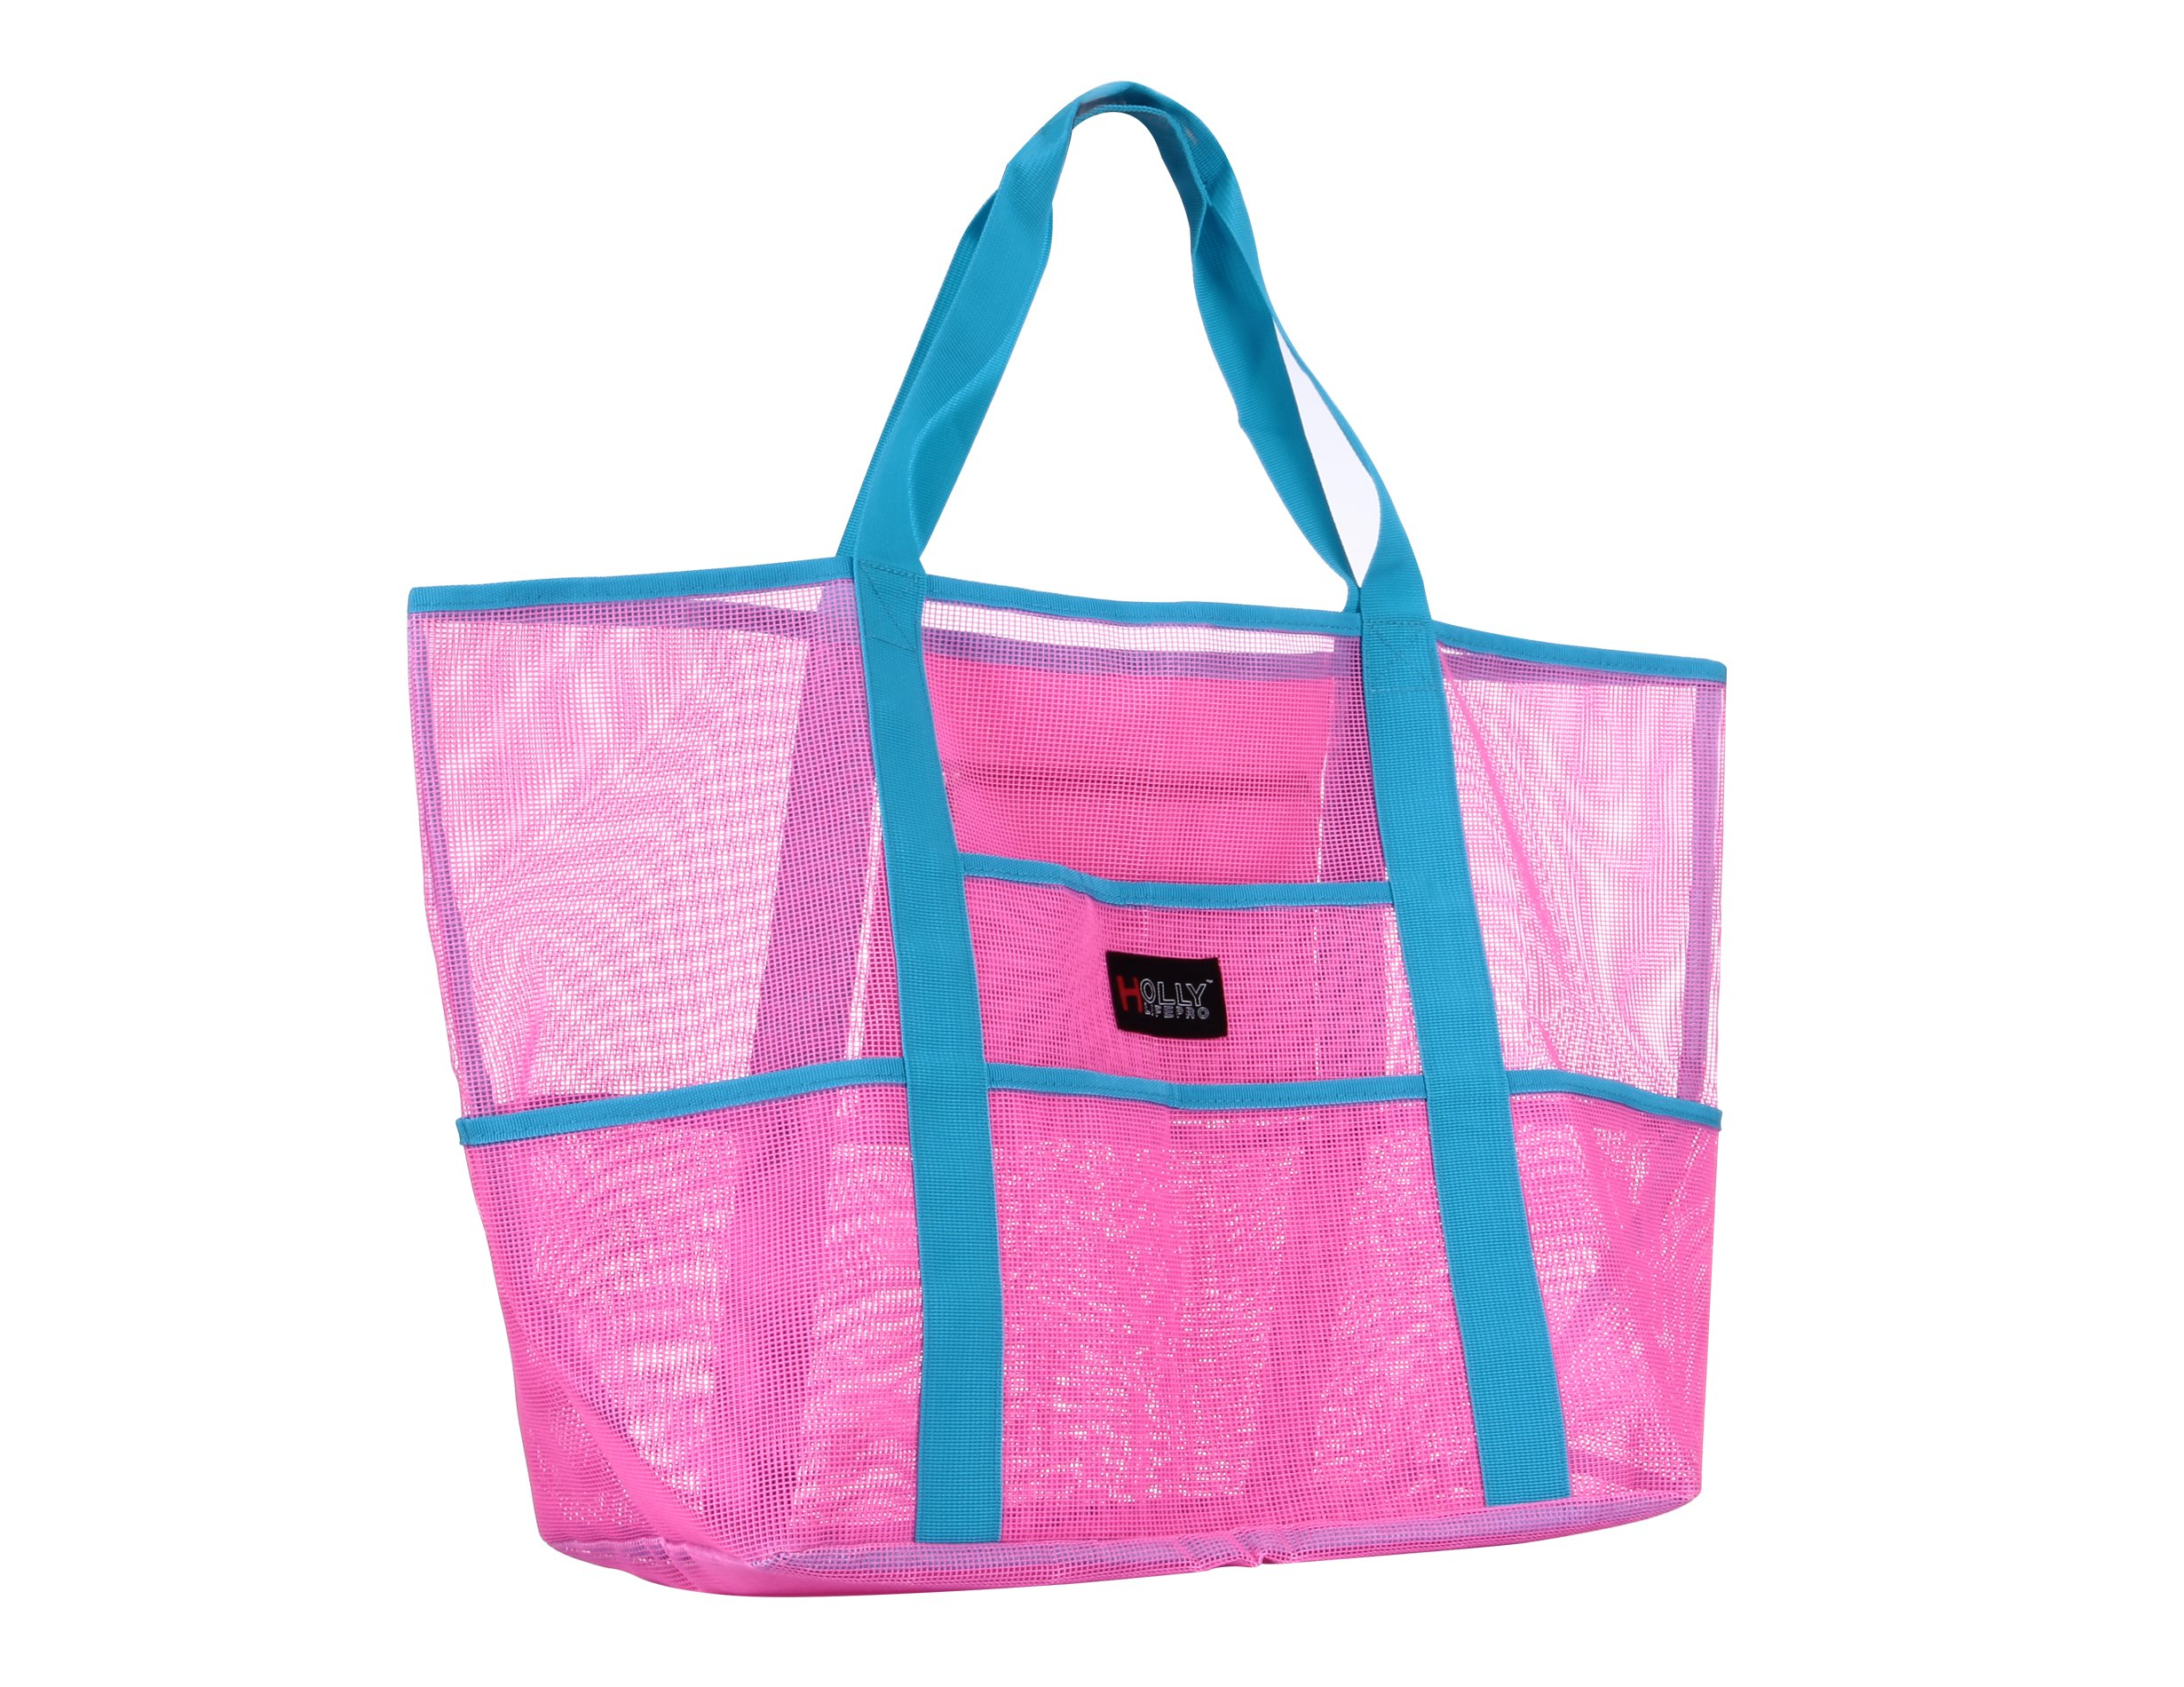 Holly LifePro Mesh Beach Bag Toy Tote Bag Large,Lightweight Market Grocery & Picnic Tote with Oversized Pockets,Inside Zippered Pocket,Carry All Organizer Bag Pink